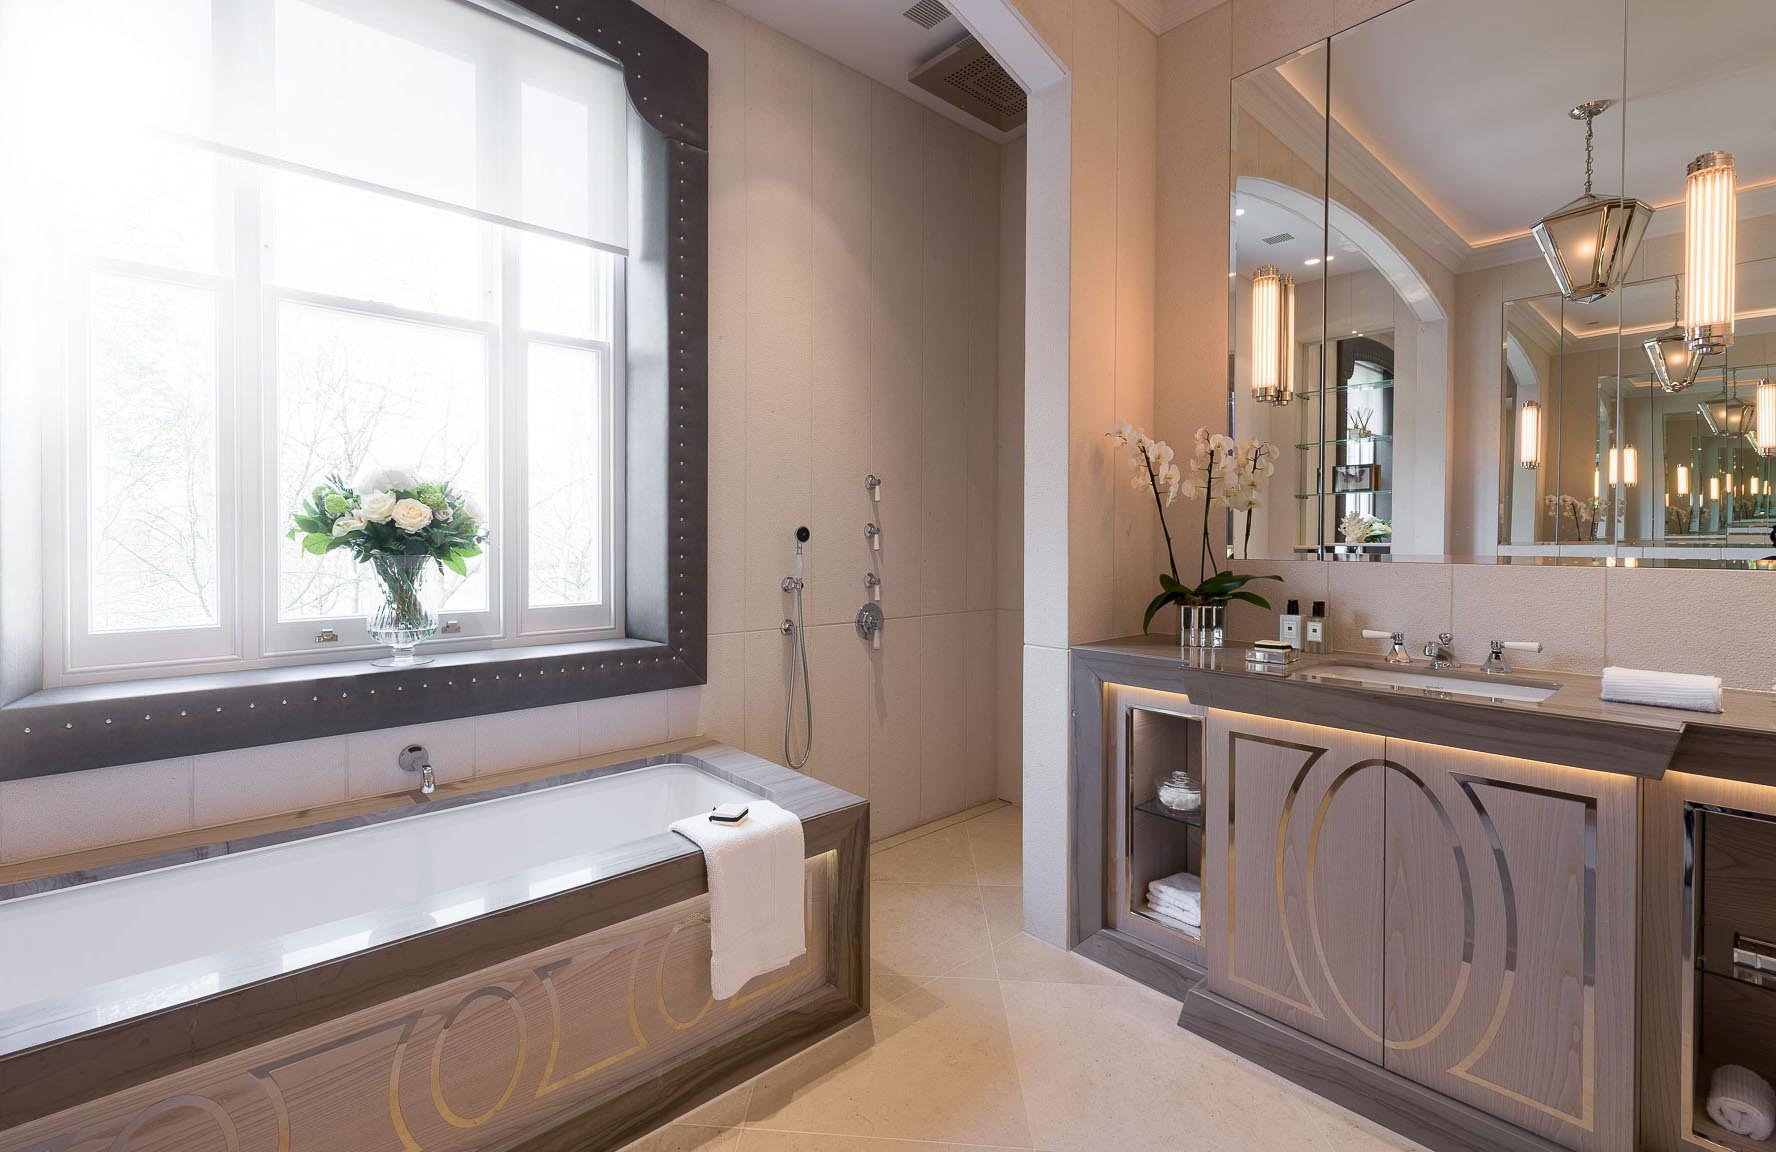 phillimore-gardens-bathroom-interior-photographer-kensington-london-property-13c